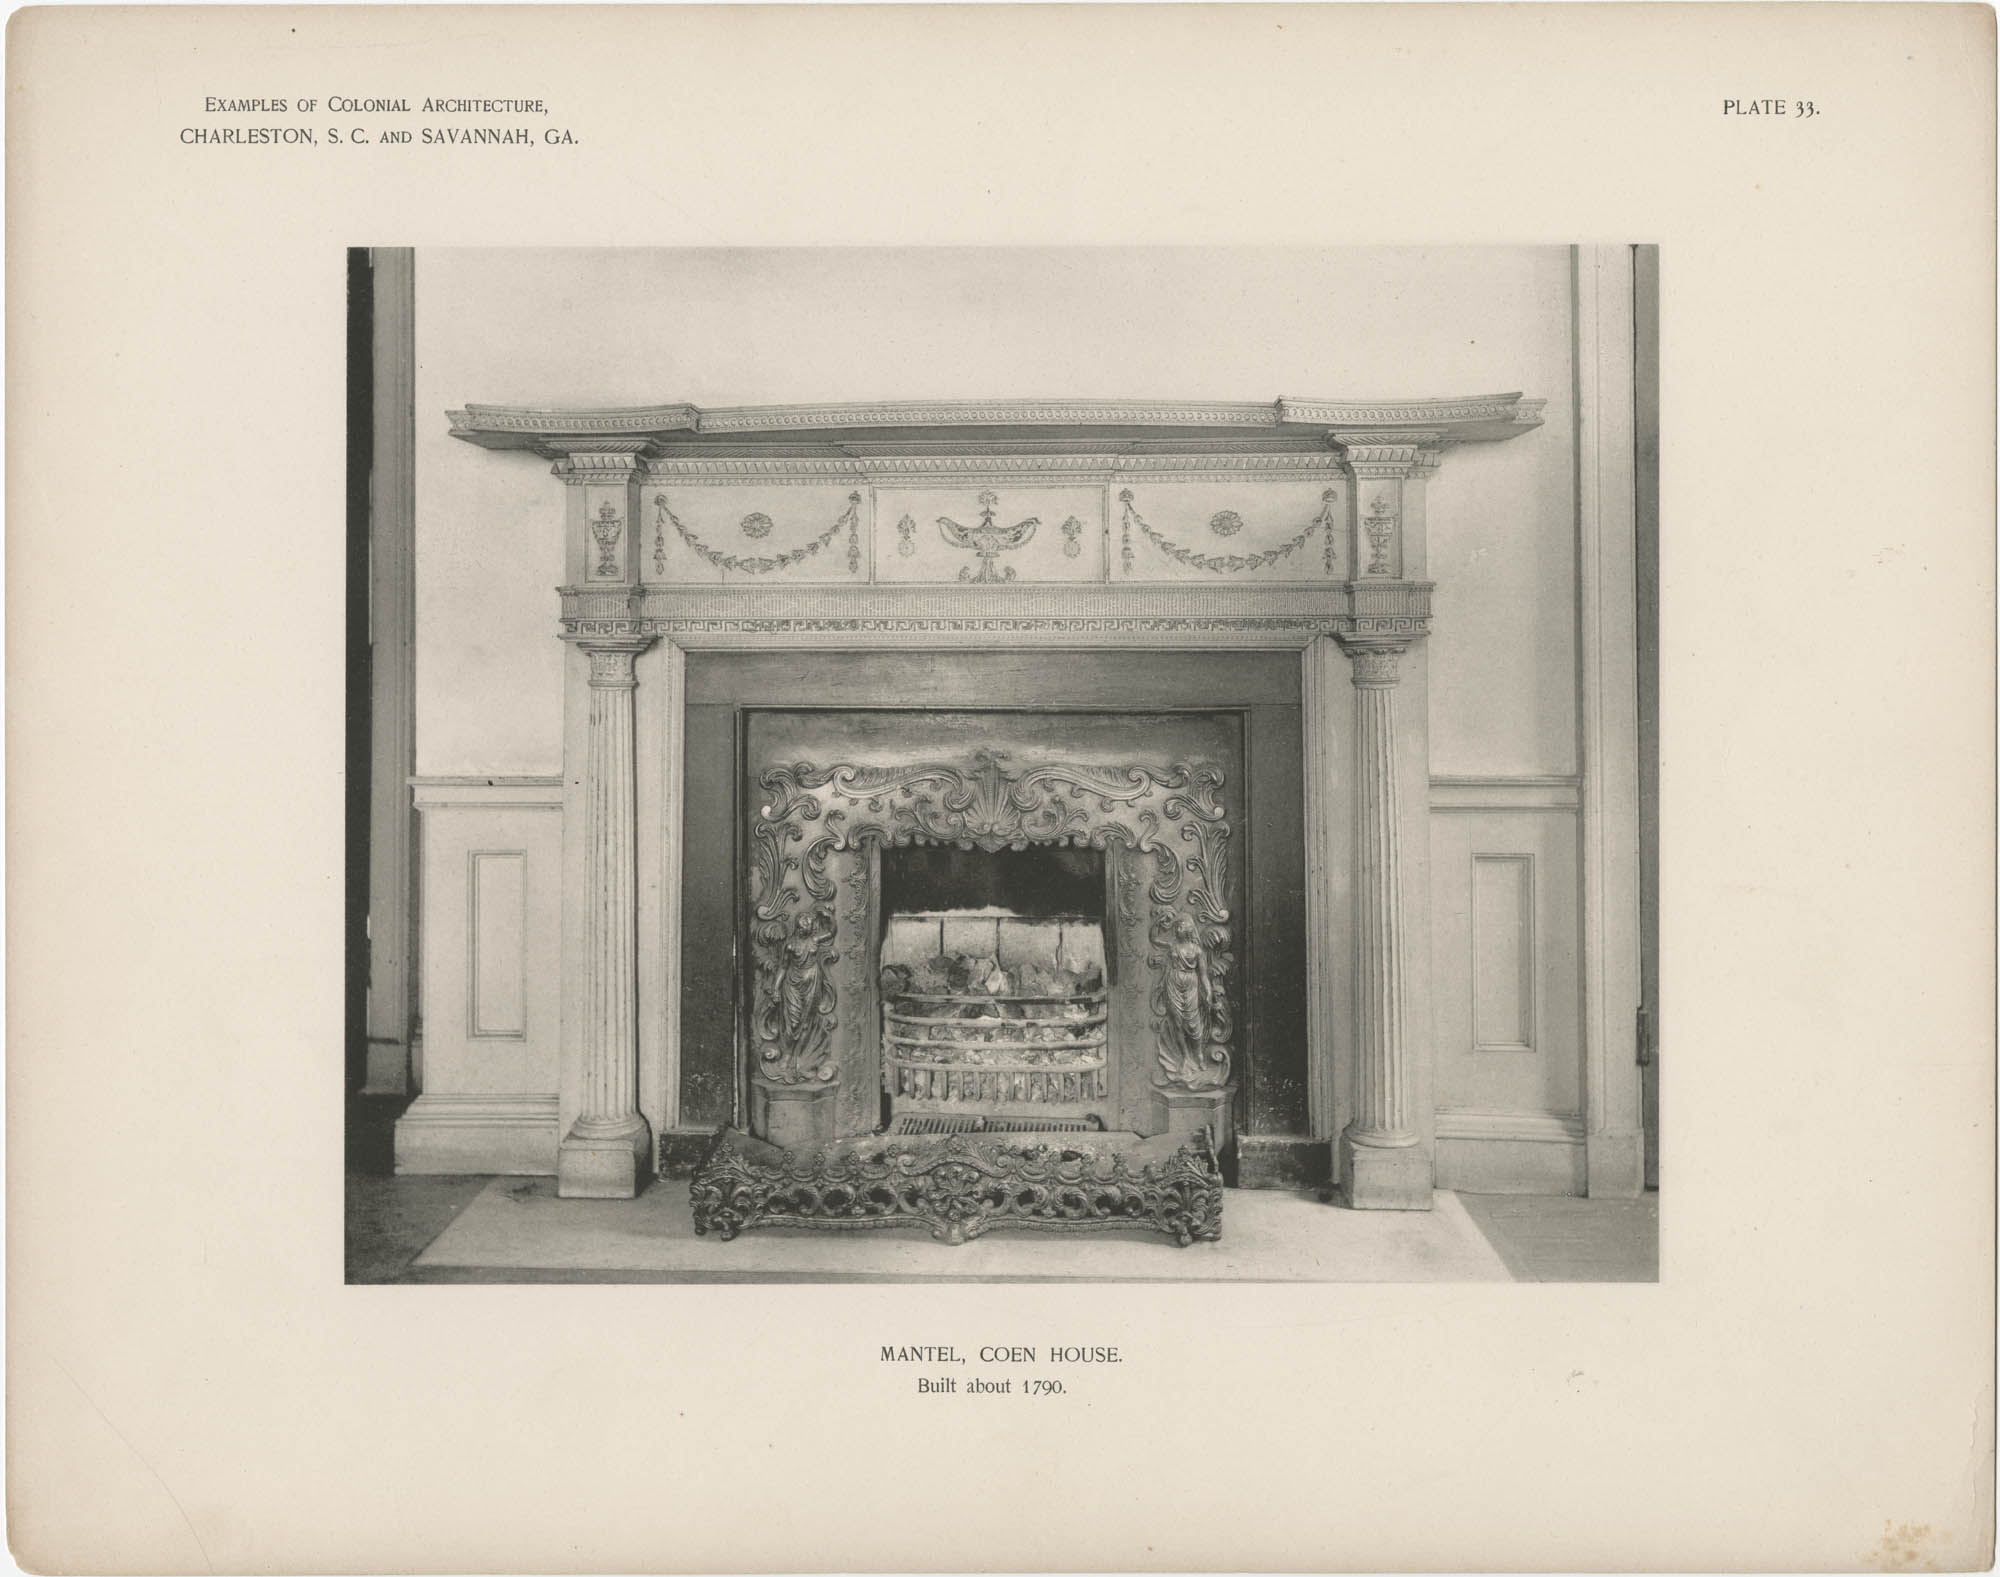 Plate 33: Mantel, Coen House, Built About 1790